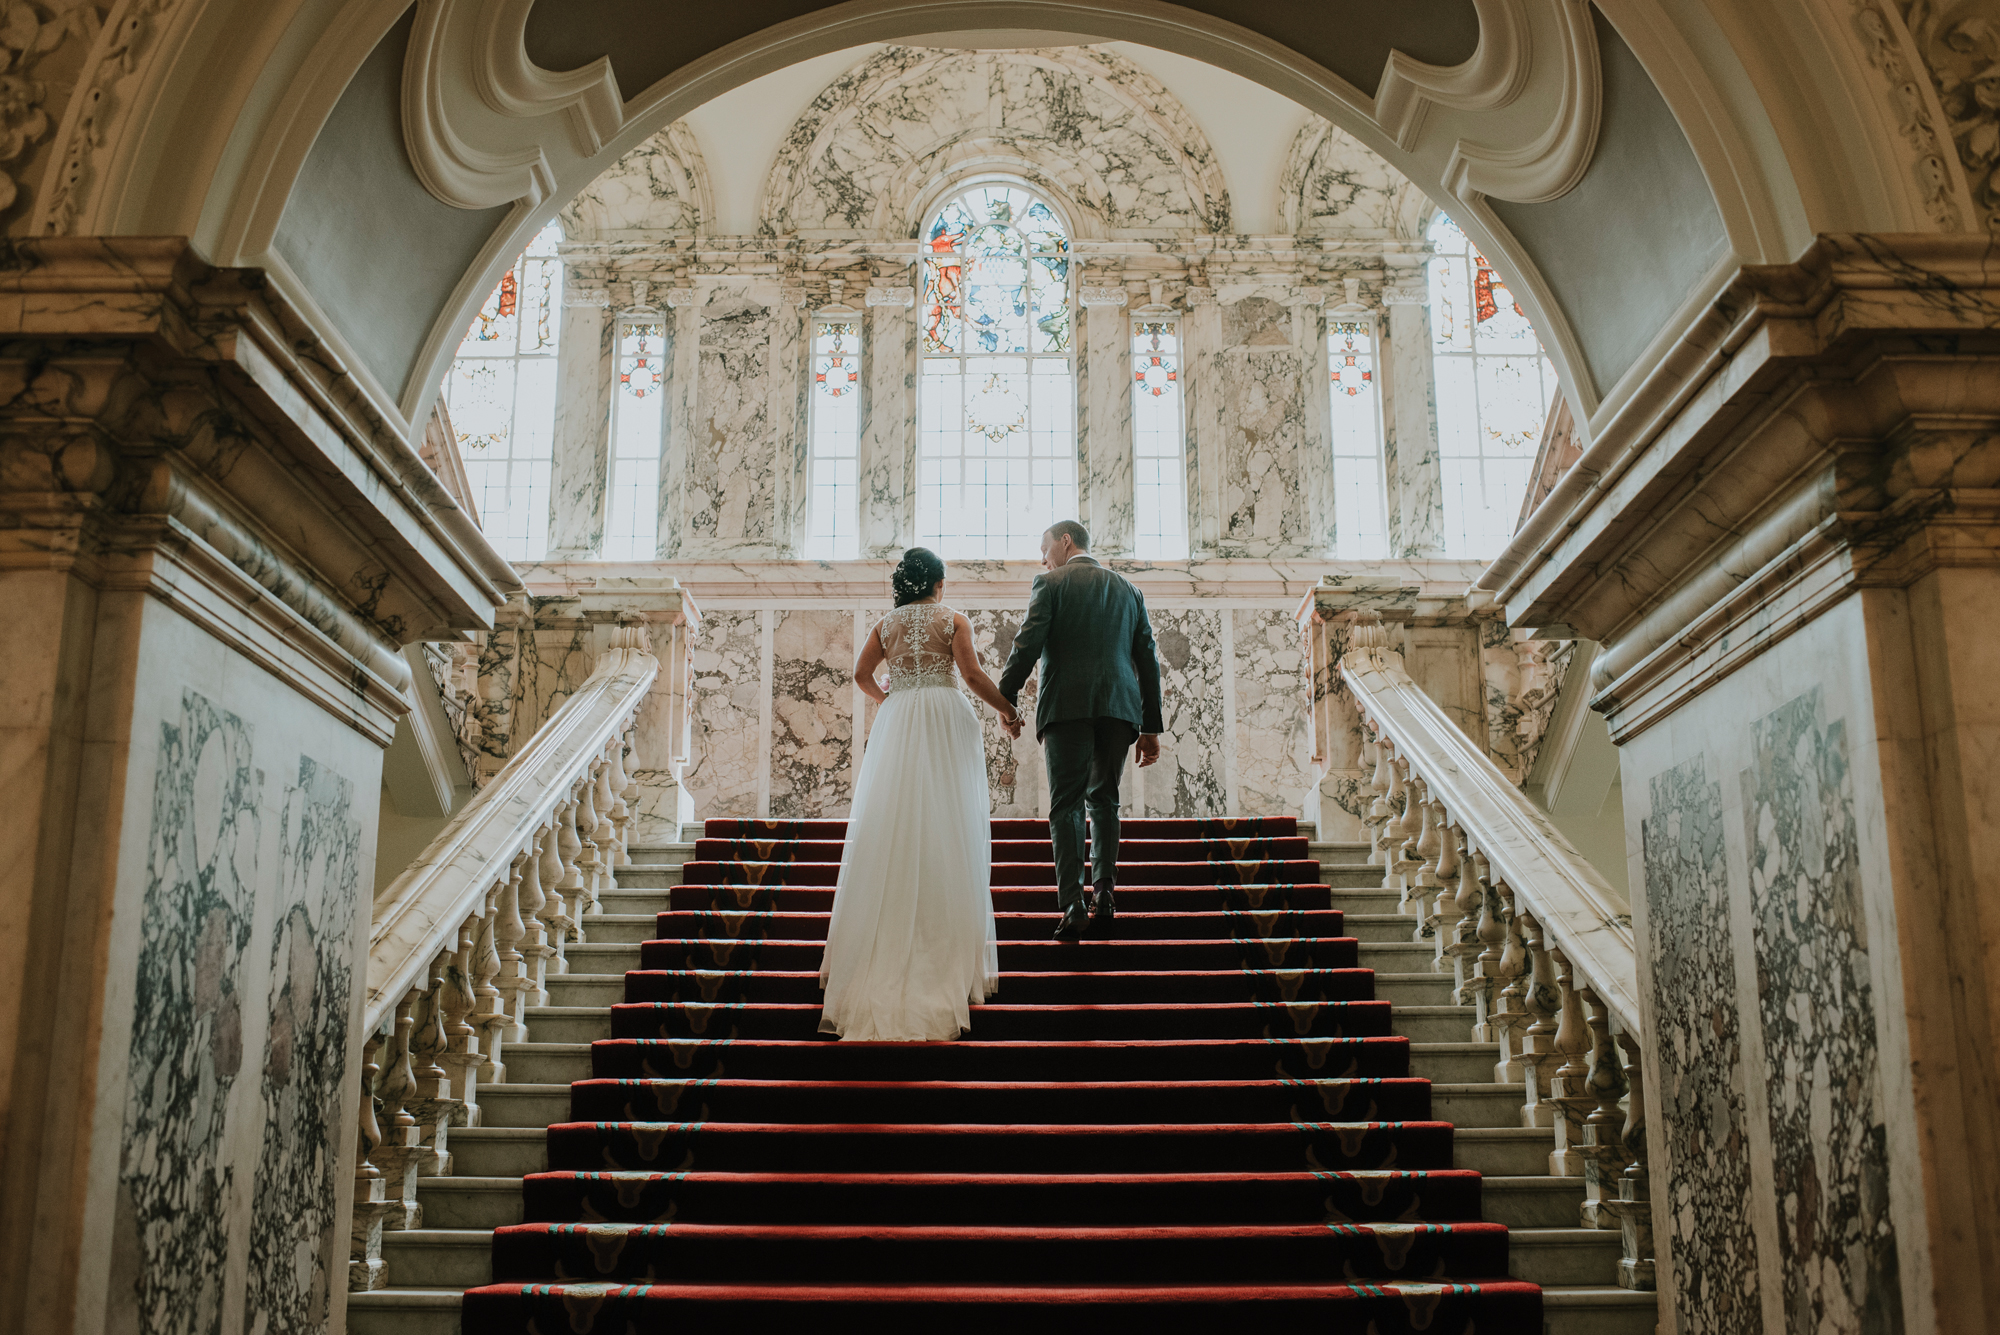 Frances_meaney_wedding_photographer_northern_ireland_inspire=weddings_4.jpg